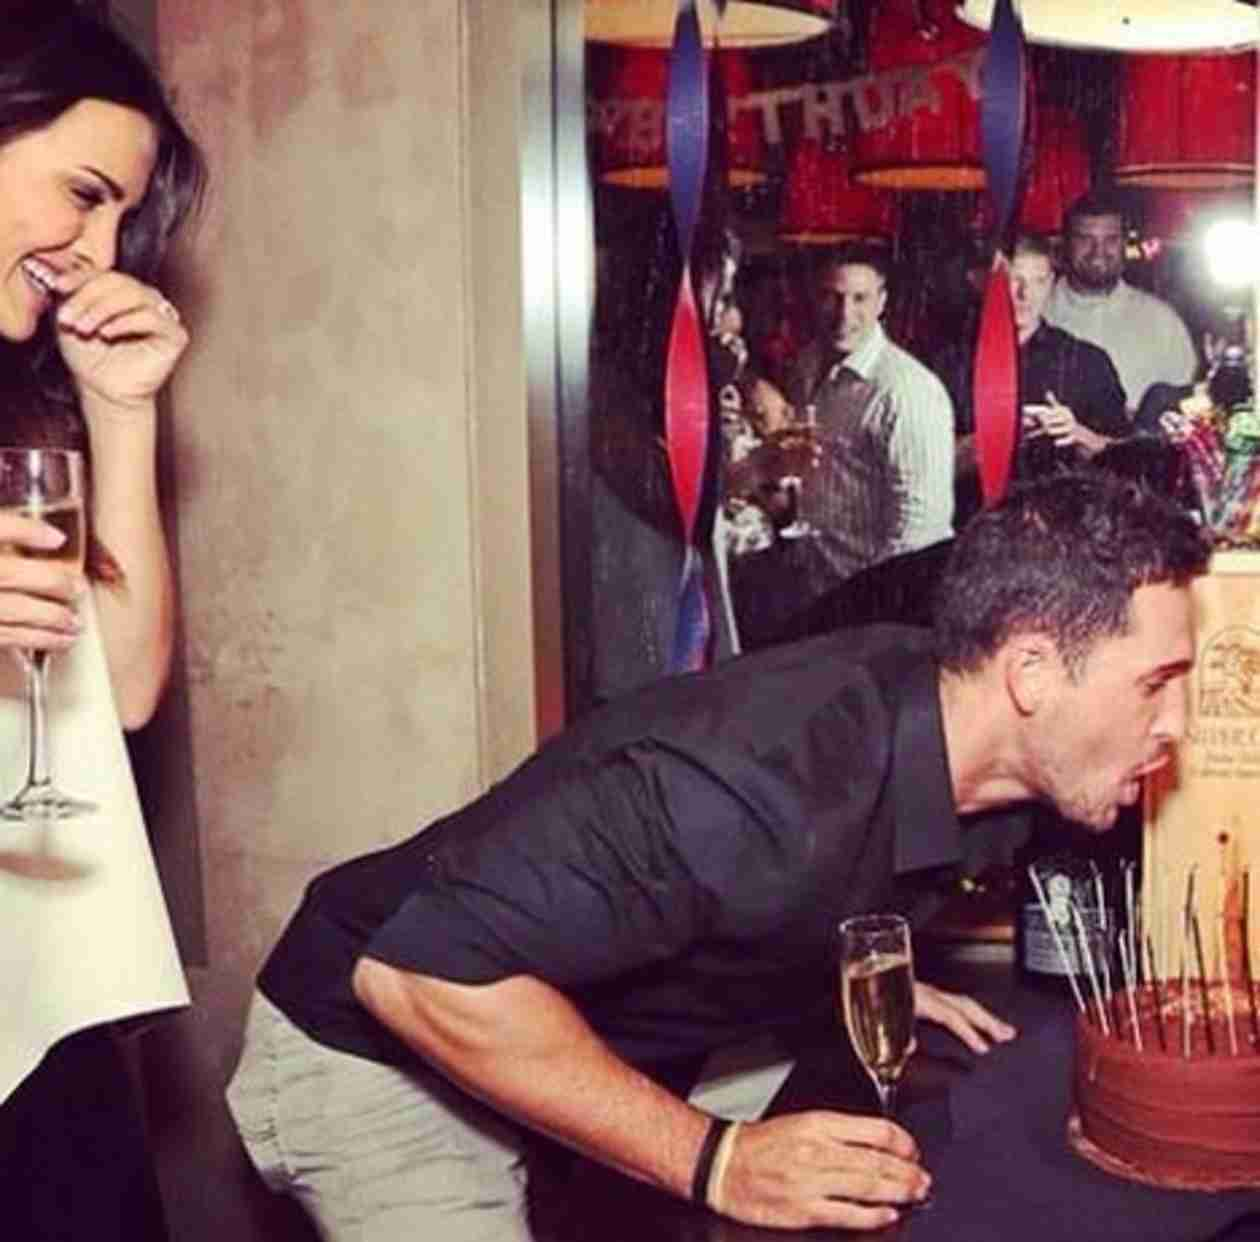 Andi Dorfman Throws Surprise Party for Josh's 30th Birthday — Which Co-Stars Attended?